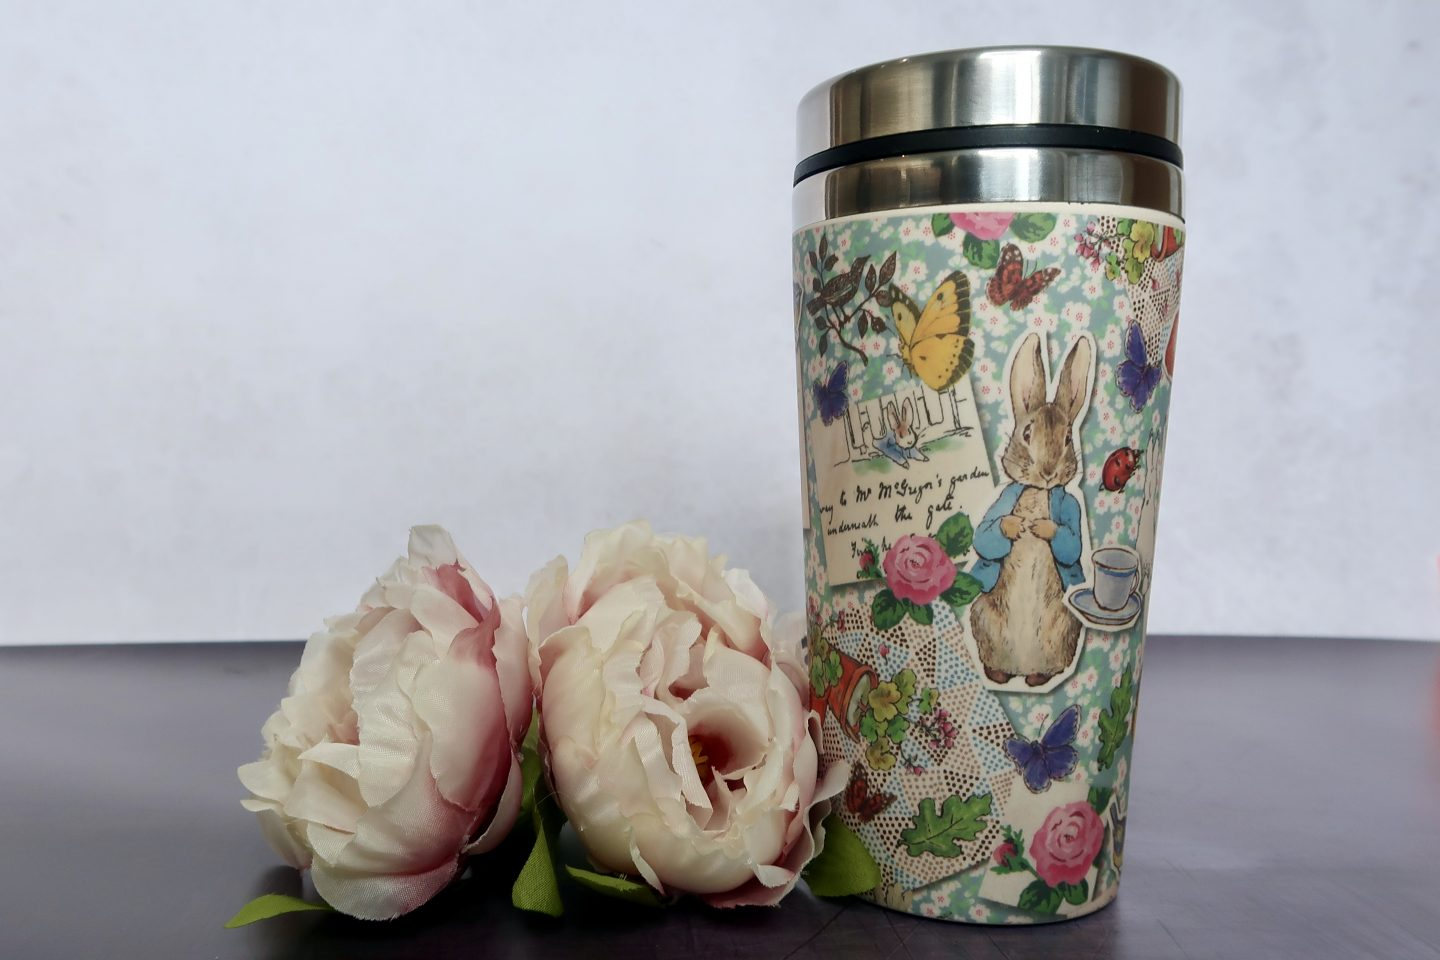 2 artifical flowers, next to a bamboo travel mug with a Peter Rabbit print on it